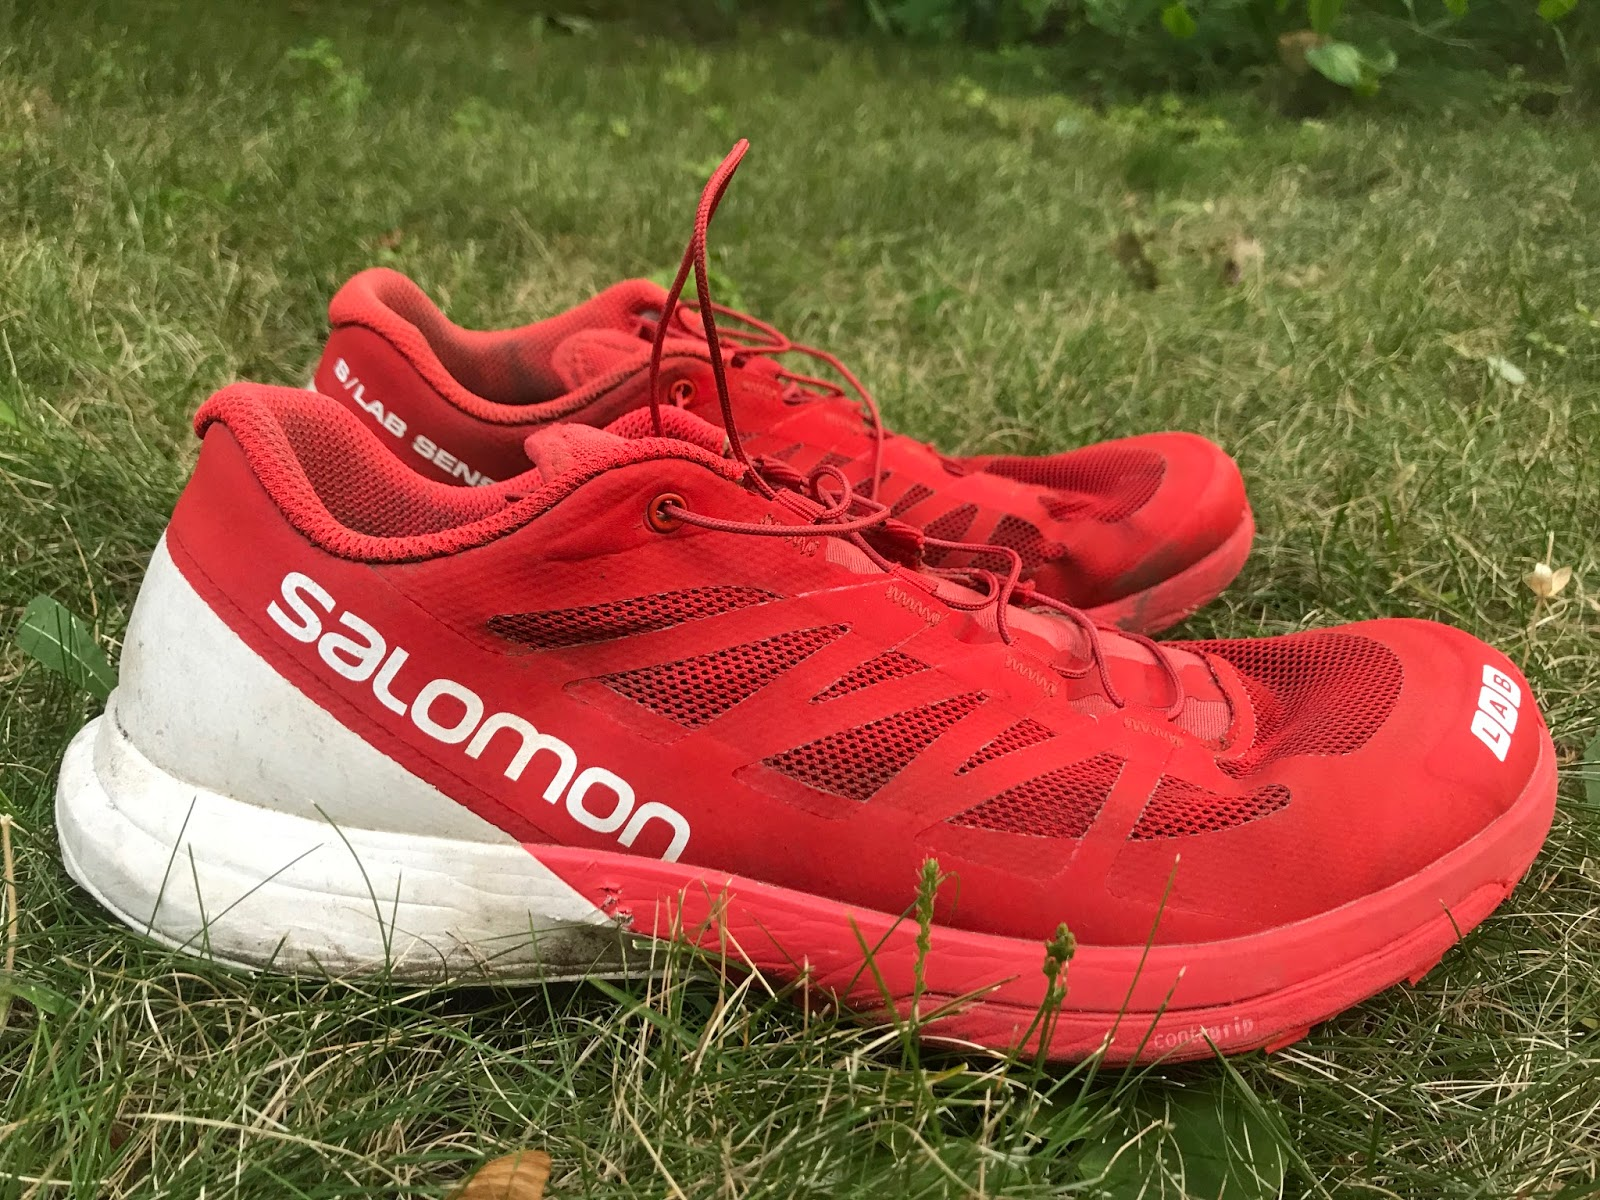 31f96c906fe2 Road Trail Run  Salomon S Lab Sense 6 and Sense 6 SG Review  True ...